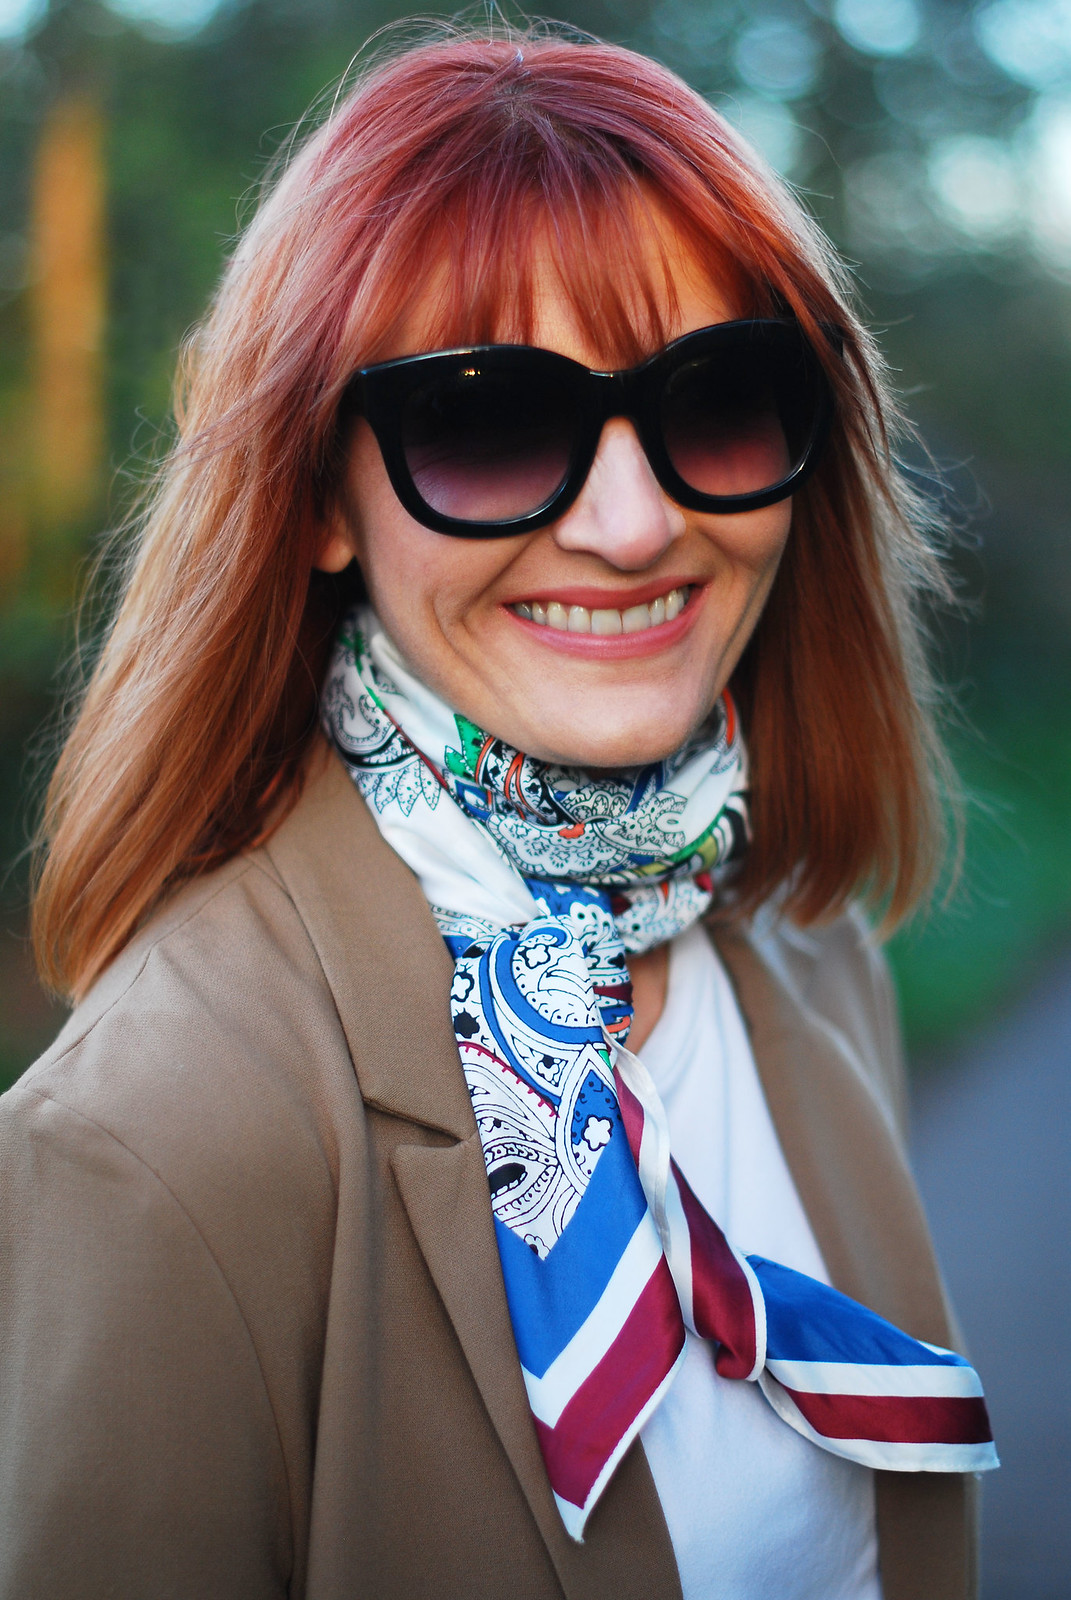 SS16 Smart style: Camel blazer, neck scarf, cat eye sunglasses | Not Dressed As Lamb